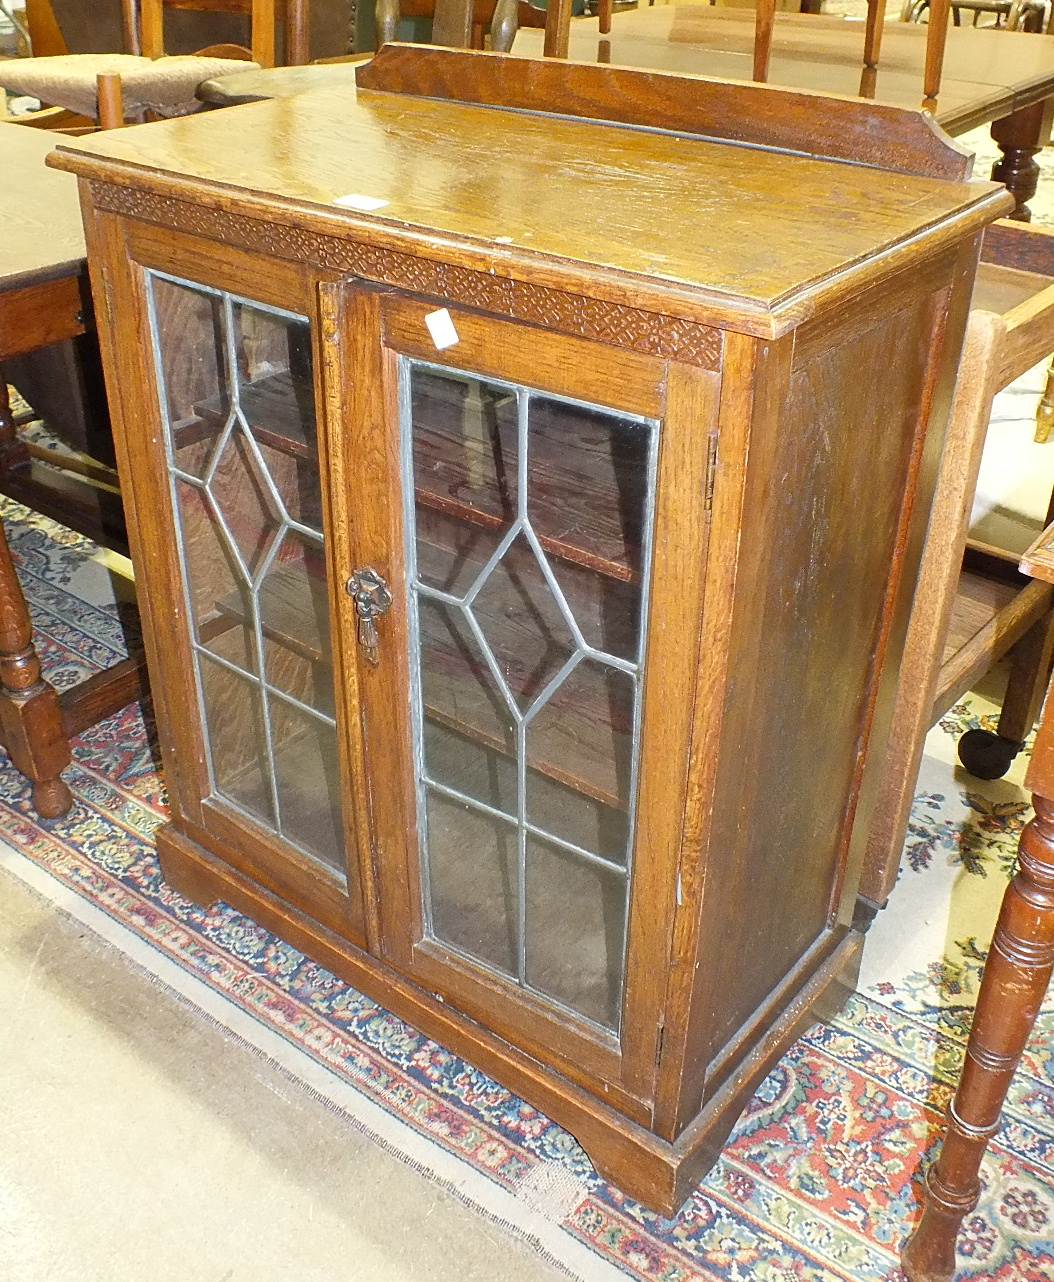 Lot 33 - An oak low bookcase fitted with a pair of leaded-light doors, 70cm wide, 92cm high, an oak tea